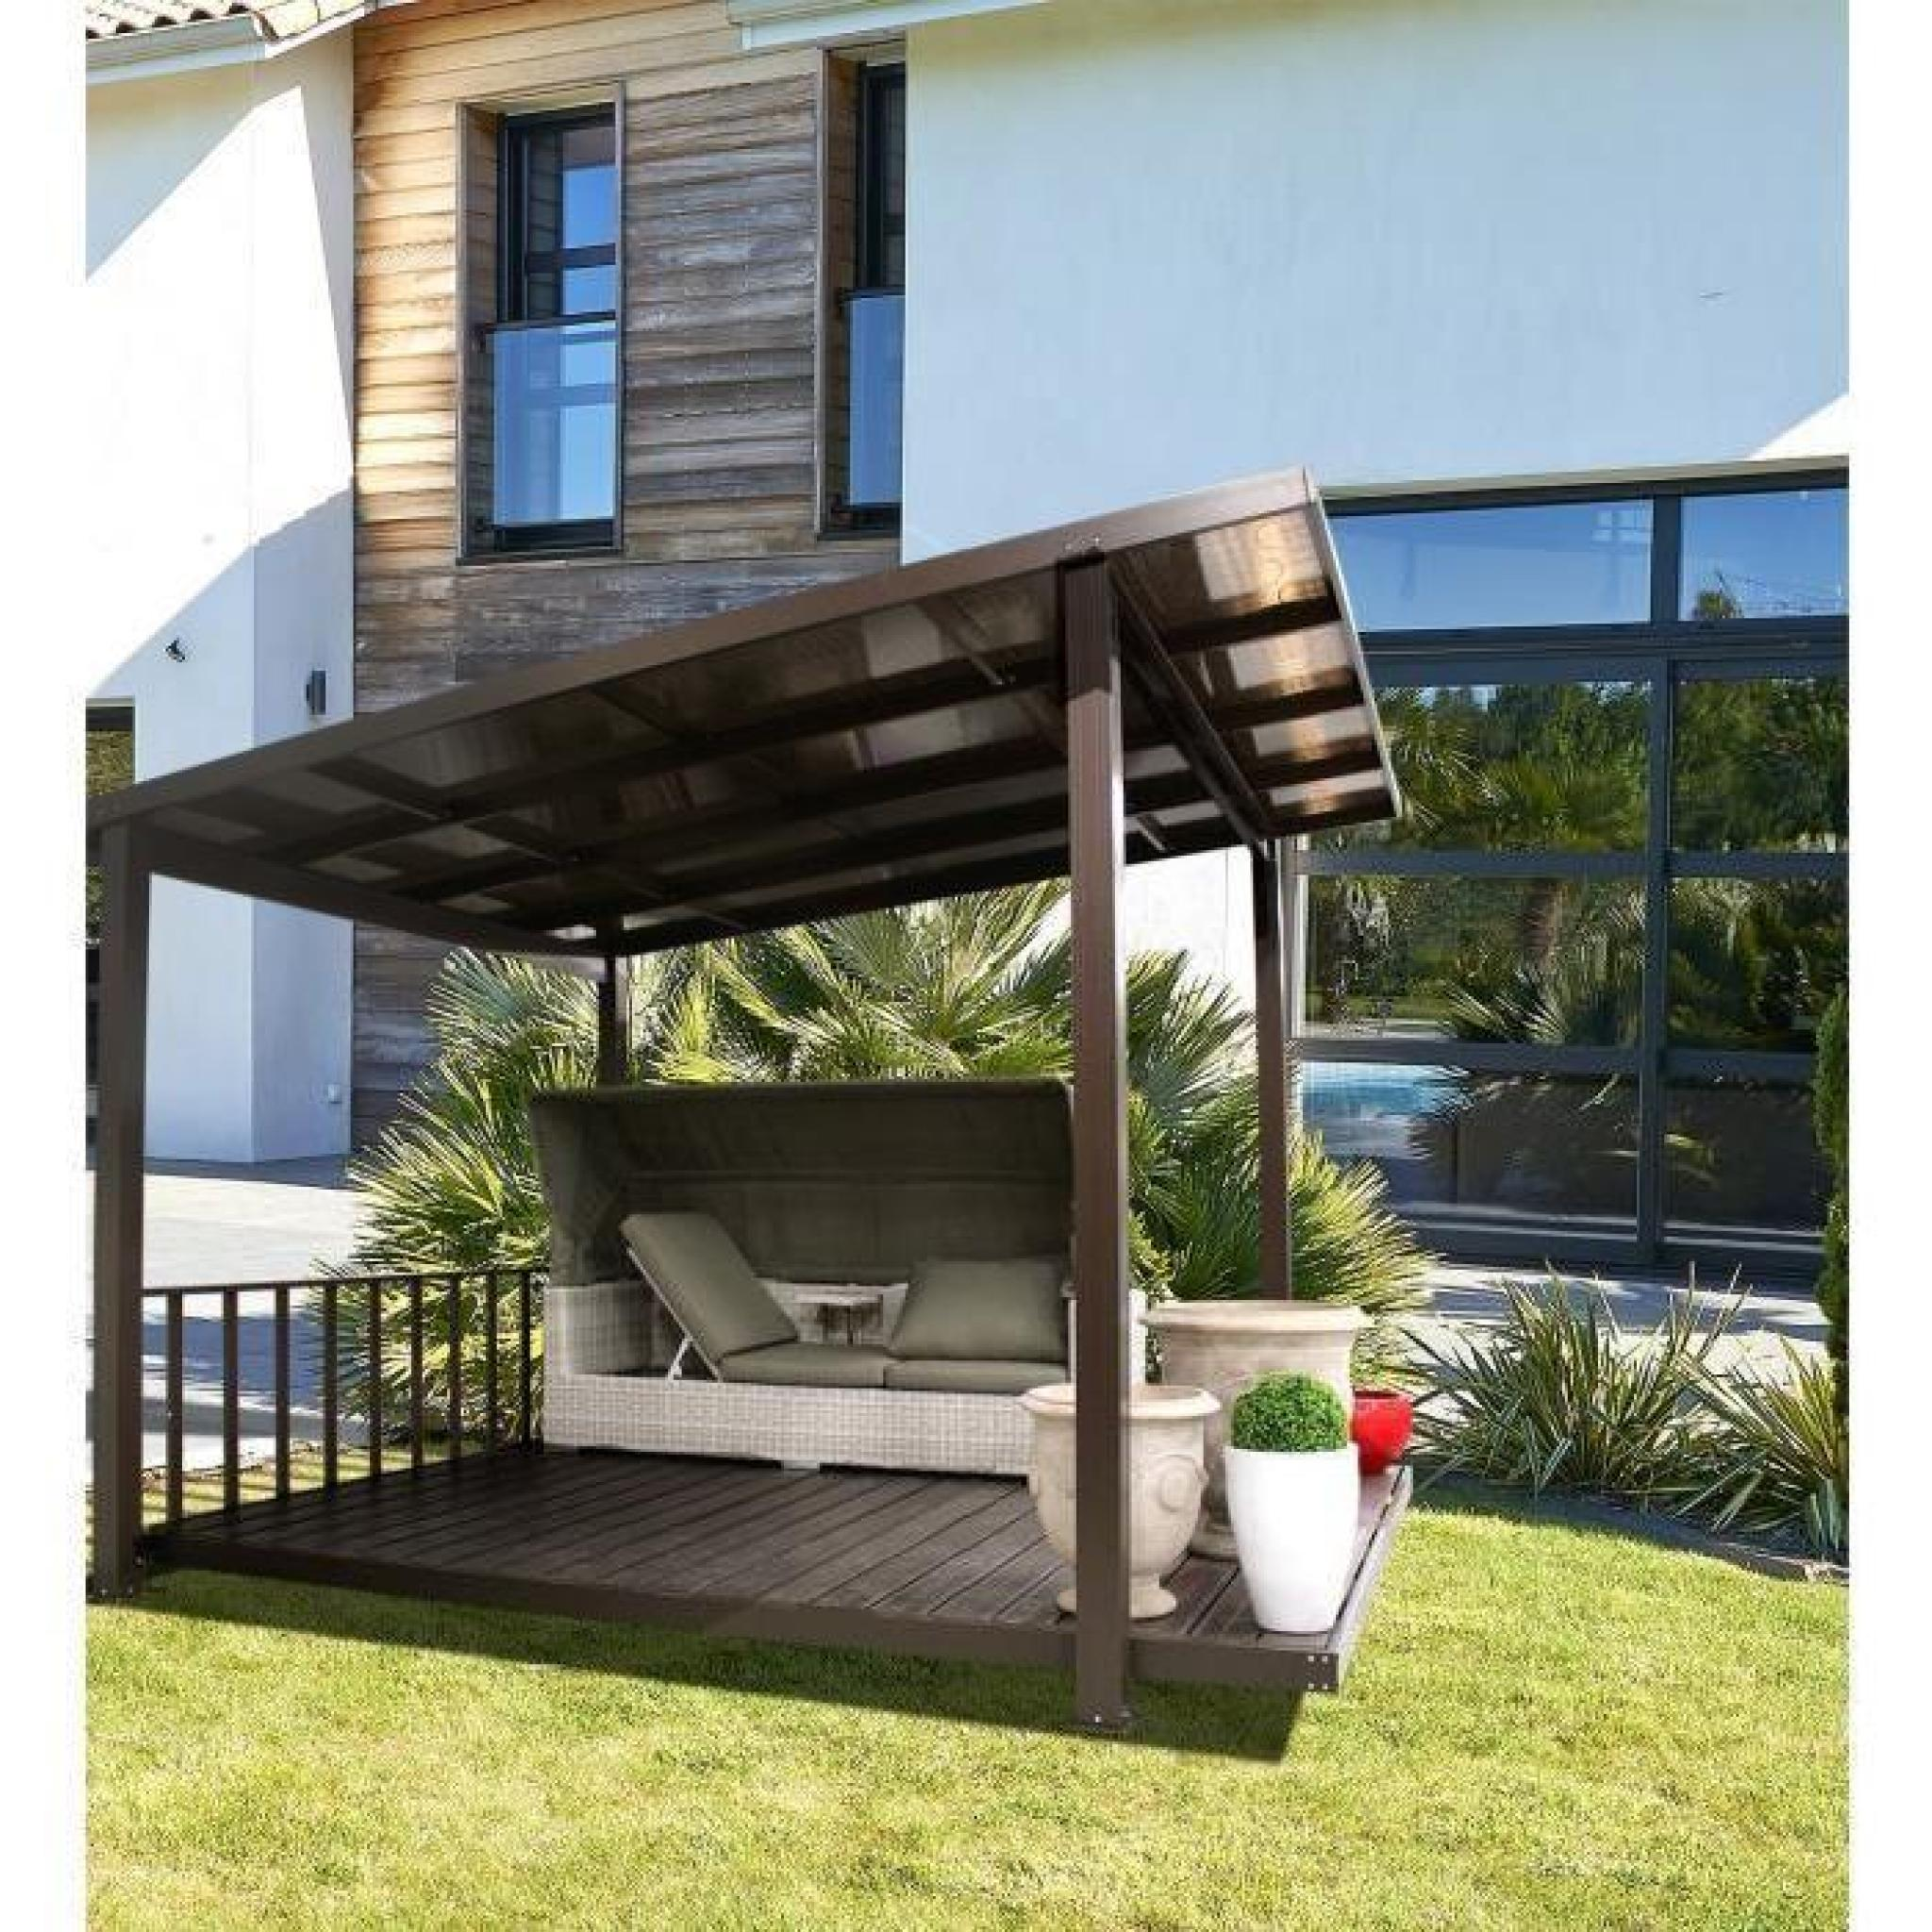 terrasse couverte en alu et polycarbonate taupe achat vente pergola en aluminium pas cher. Black Bedroom Furniture Sets. Home Design Ideas